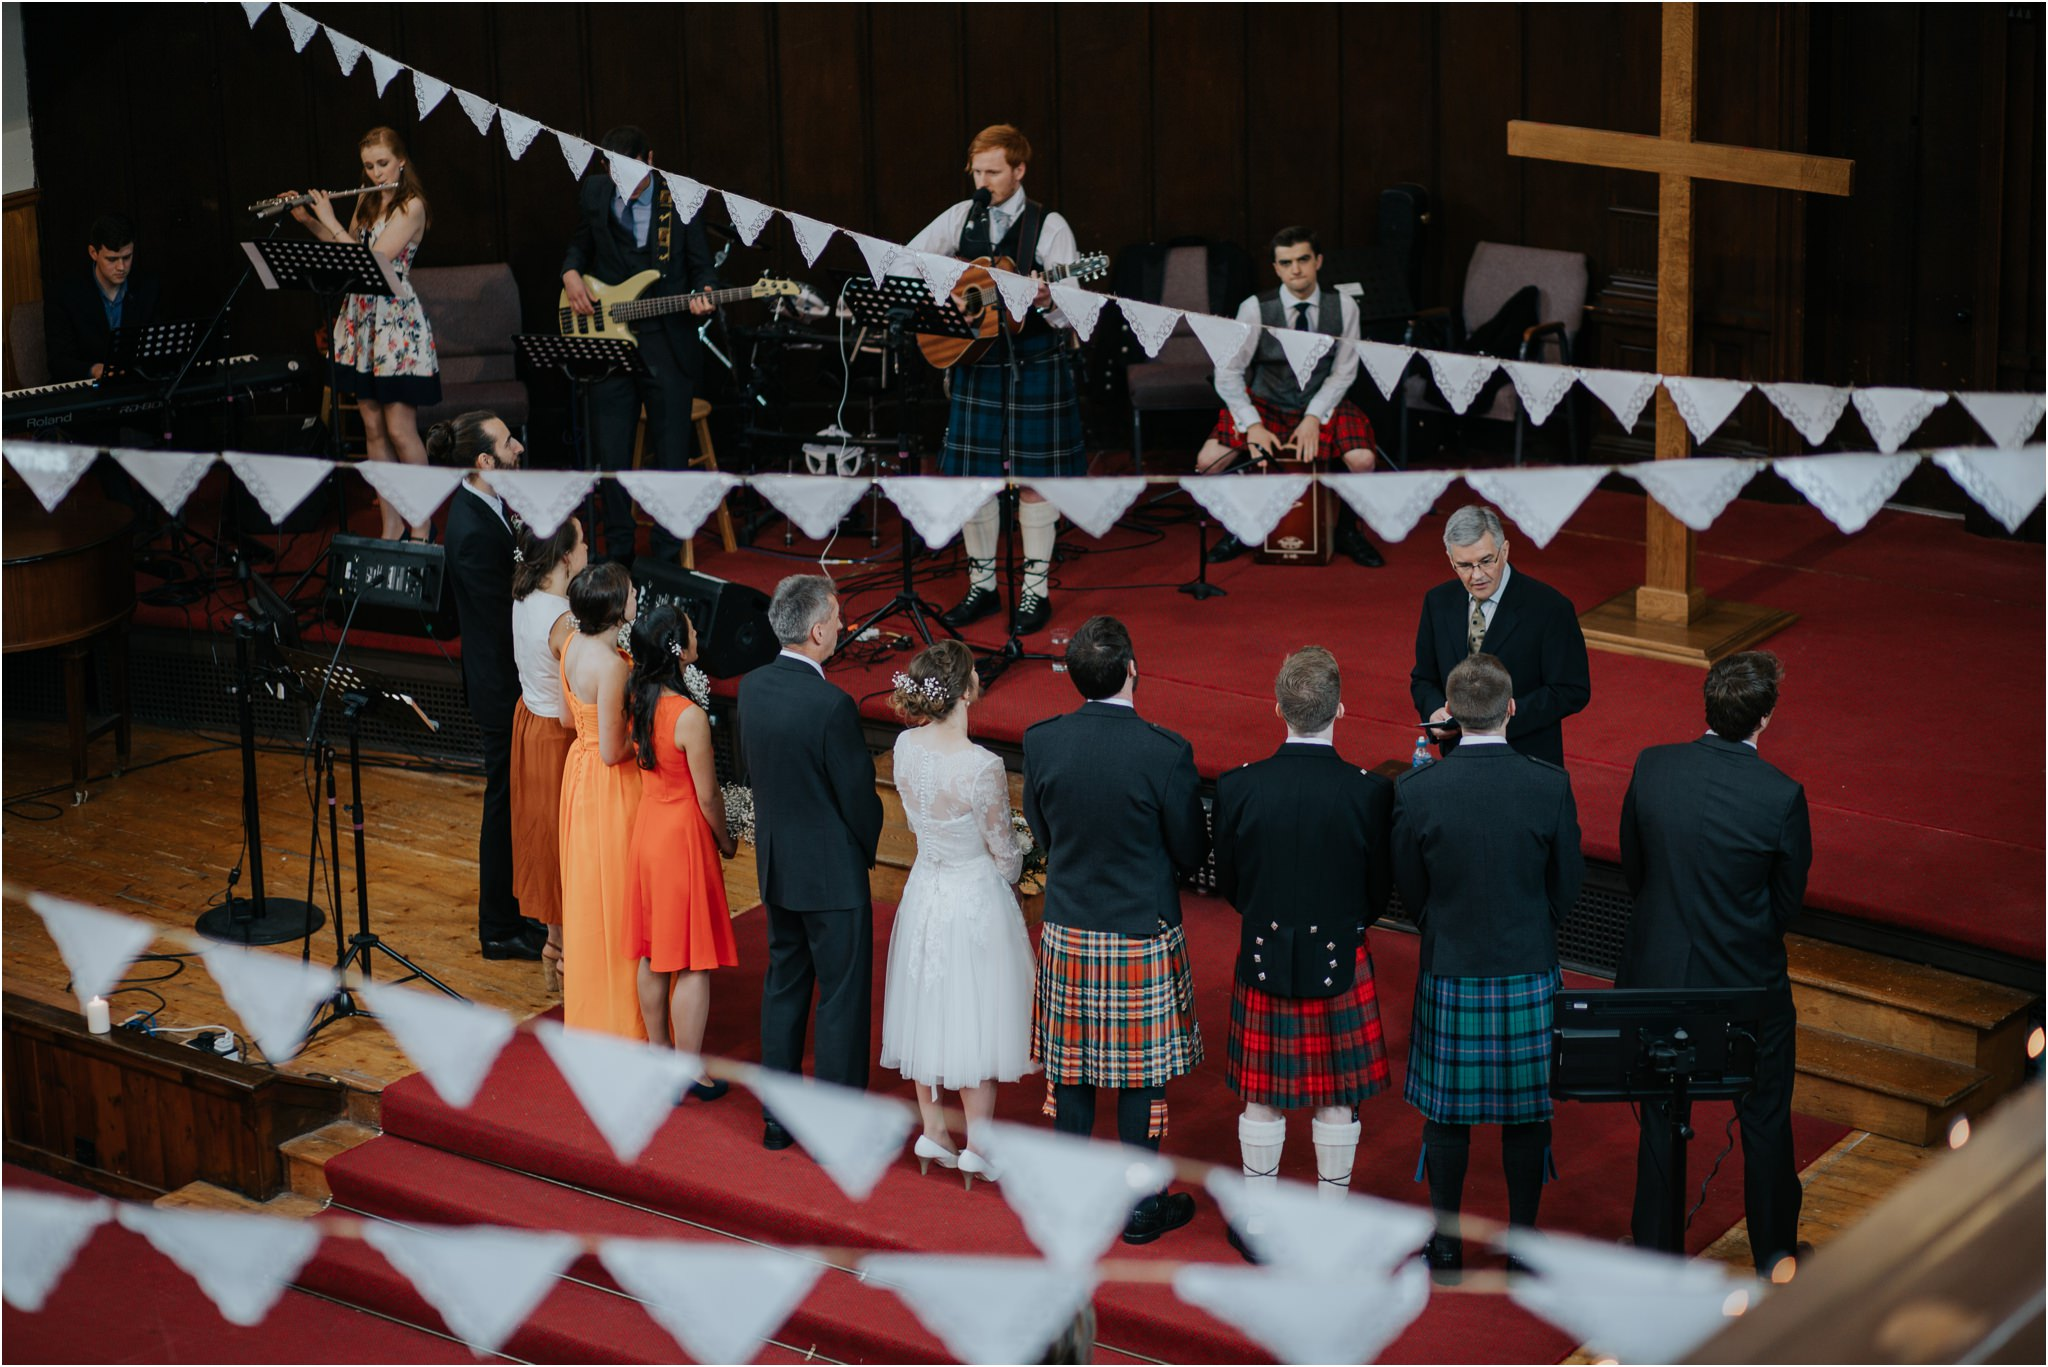 Photography 78 - Glasgow Wedding Photographer - Fraser Thirza - Killearn Village Hall - Three Sisters Bake Wedding_0092.jpg